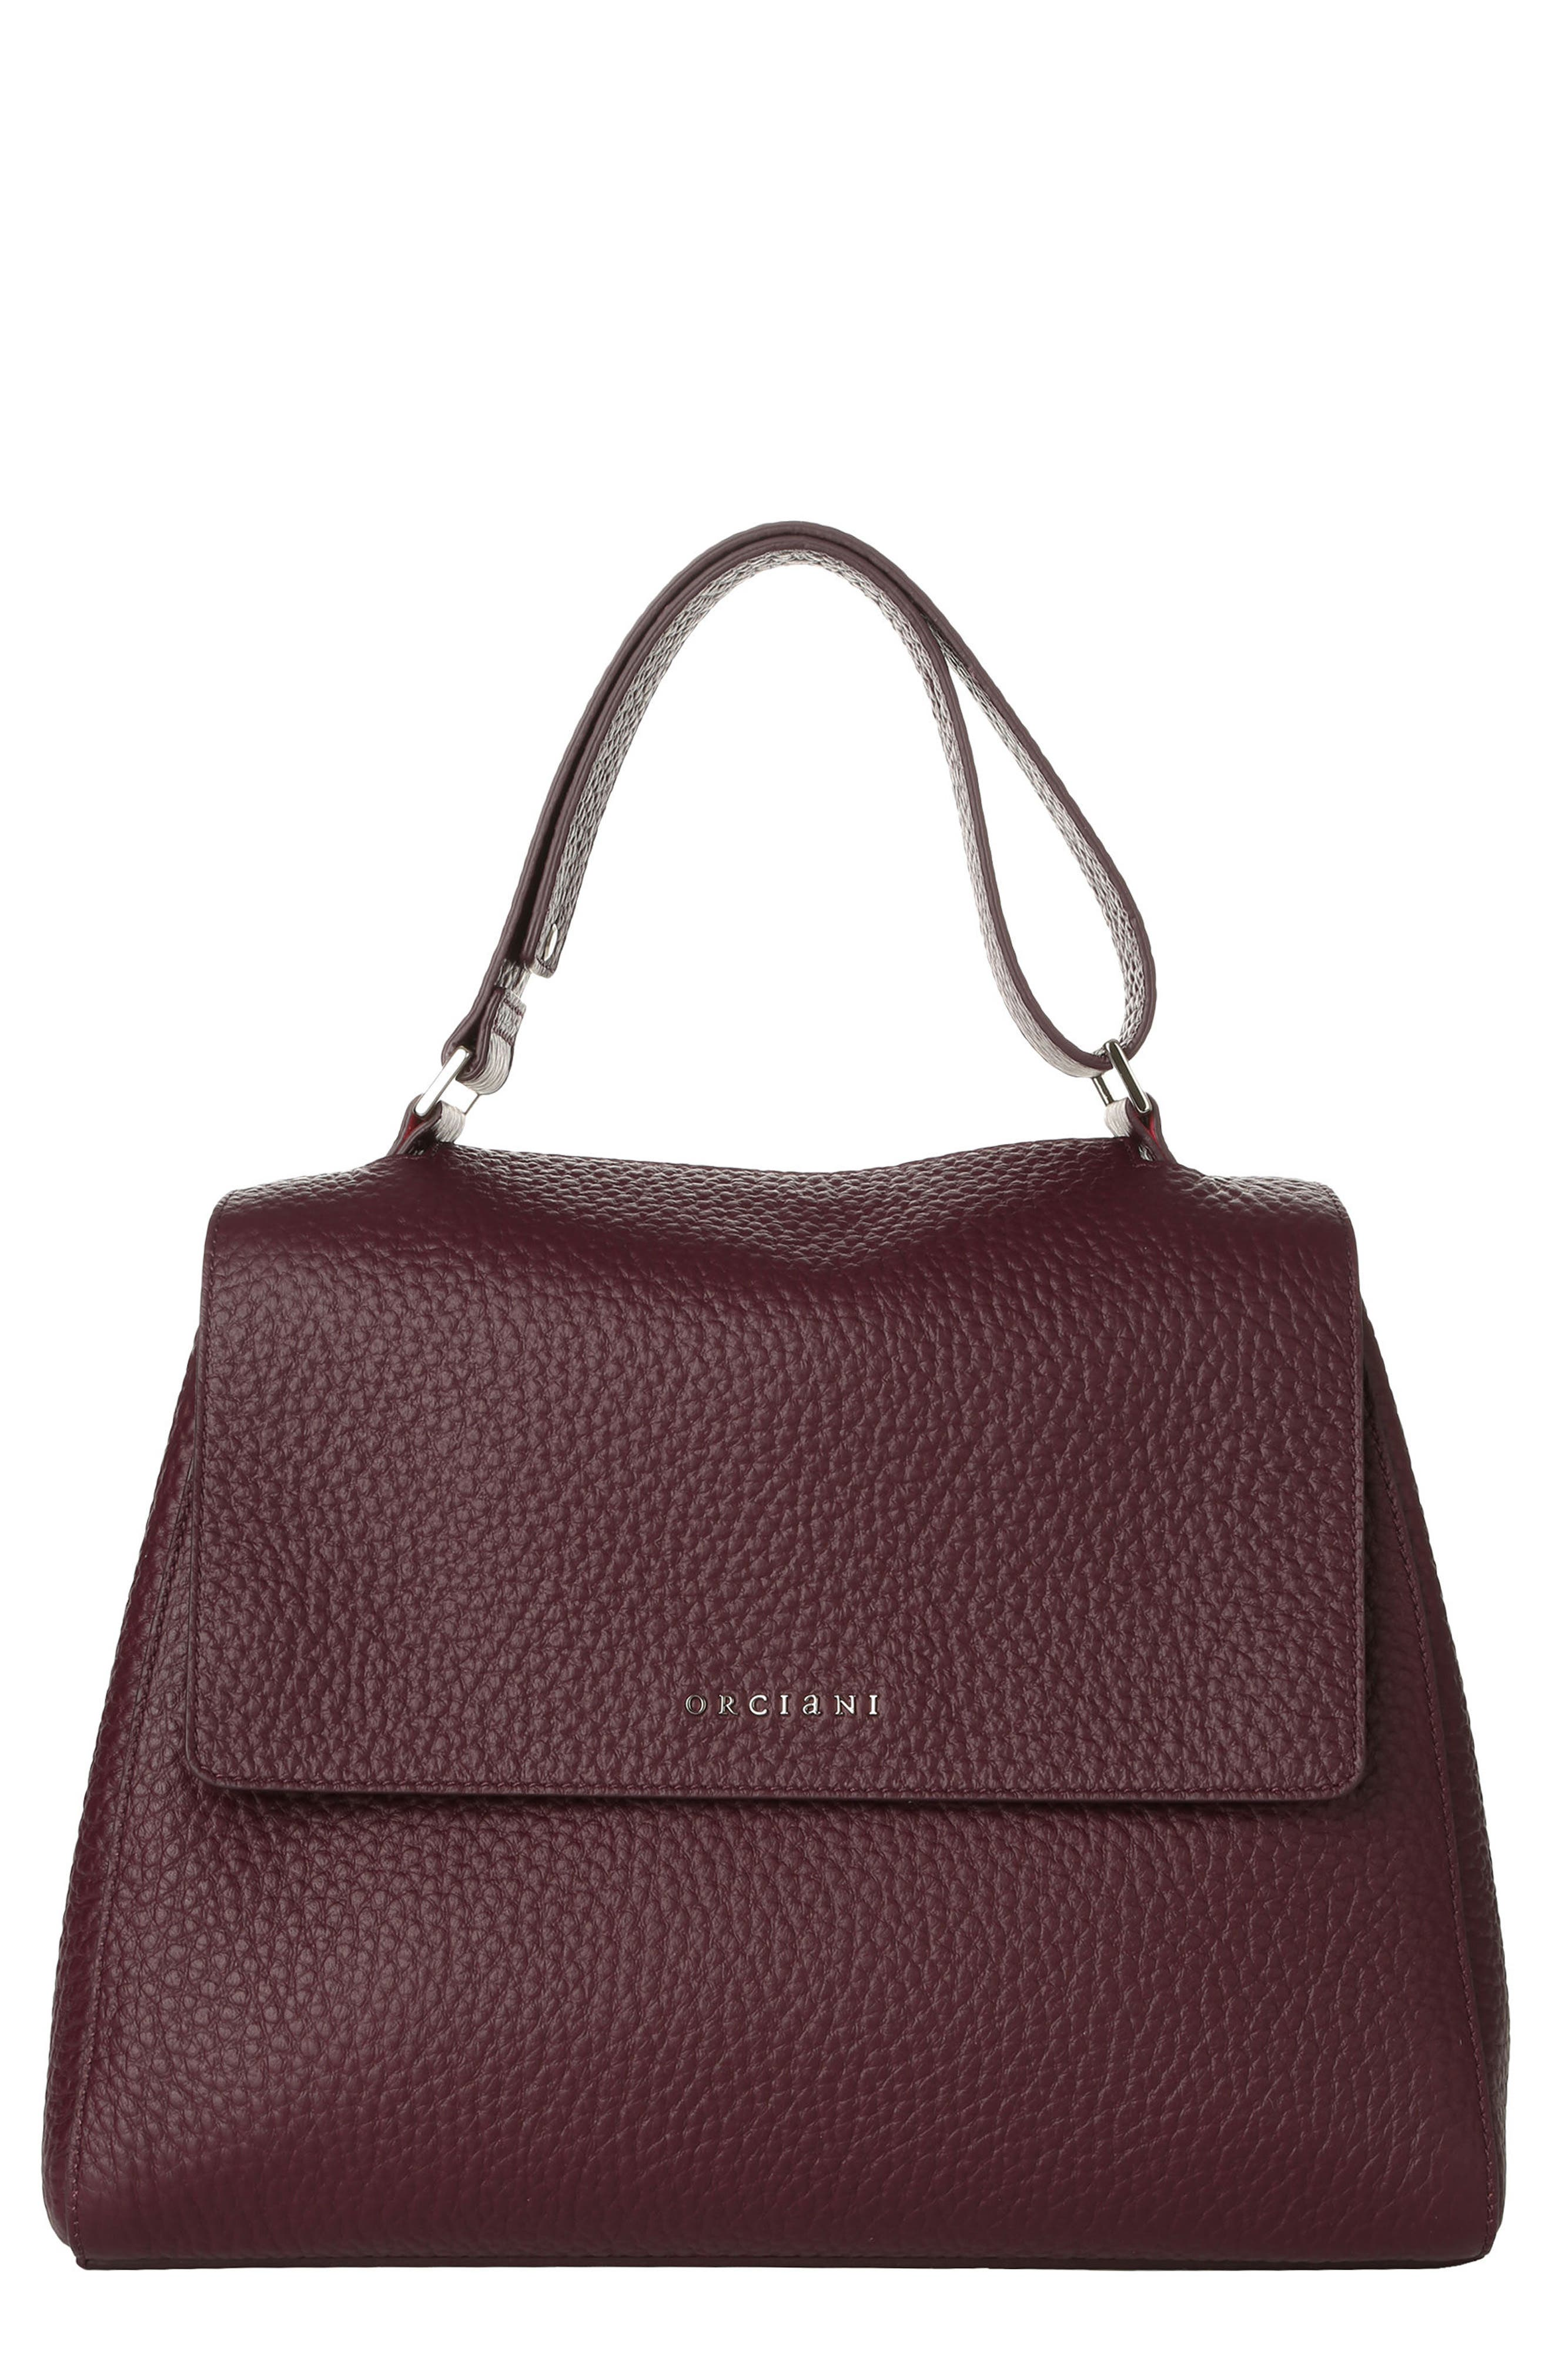 Alternate Image 1 Selected - Orciani Medium Sveva Soft Leather Top Handle Satchel